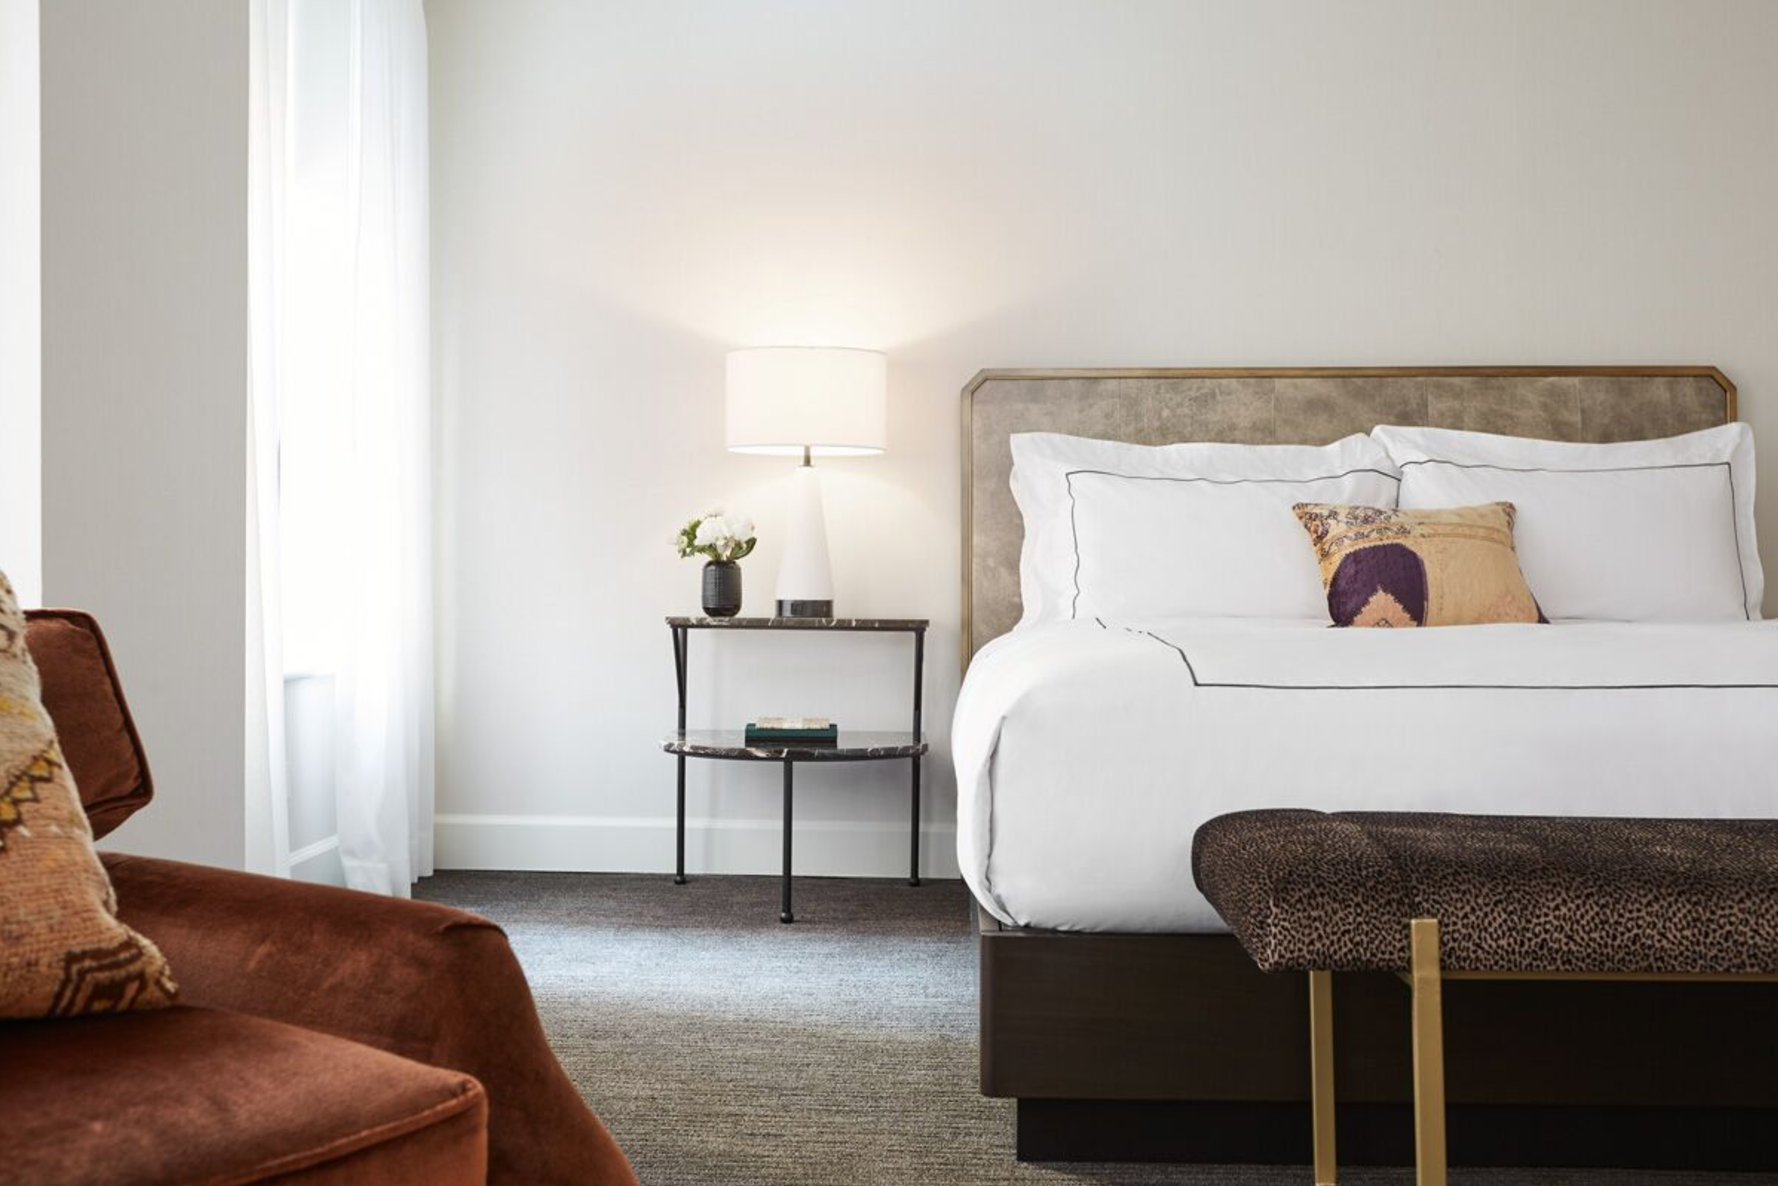 an early look inside chicago's newly remodeled talbott hotel